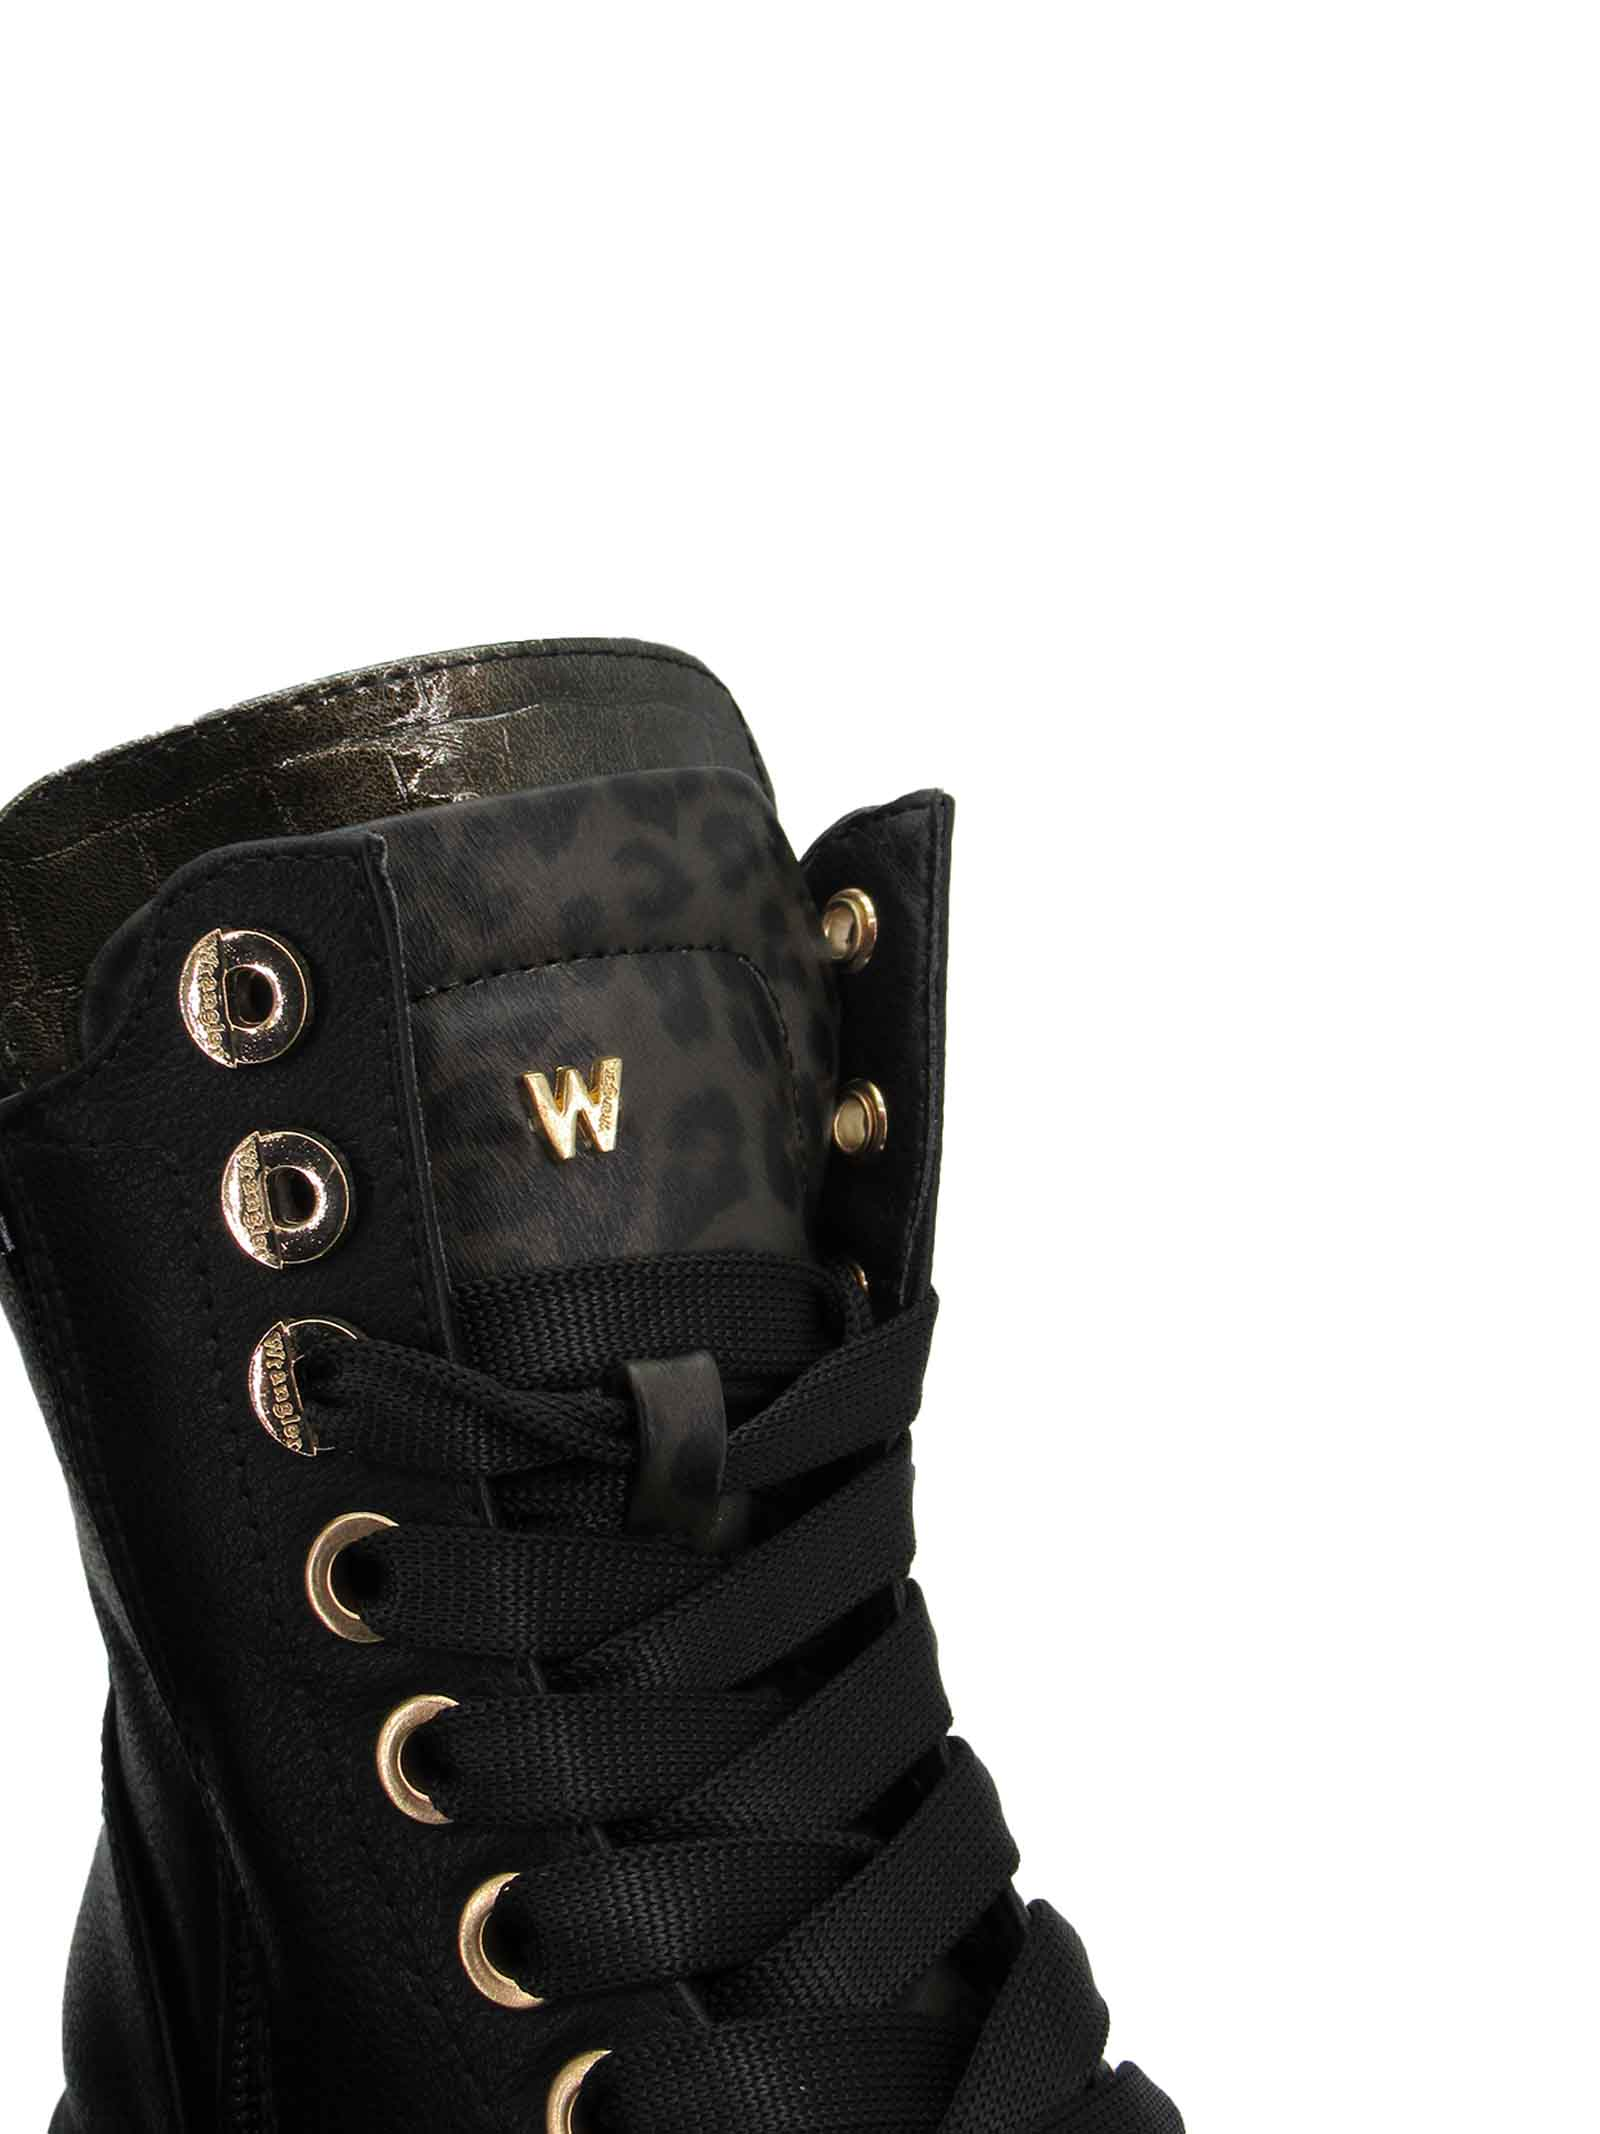 Women's Shoes Ankle Boots Combat Boot Courtney Safari Lace in Eco-Leather Black and Animal Print with Rubber Sole Tank Wrangler | Ankle Boots | WL12611A866